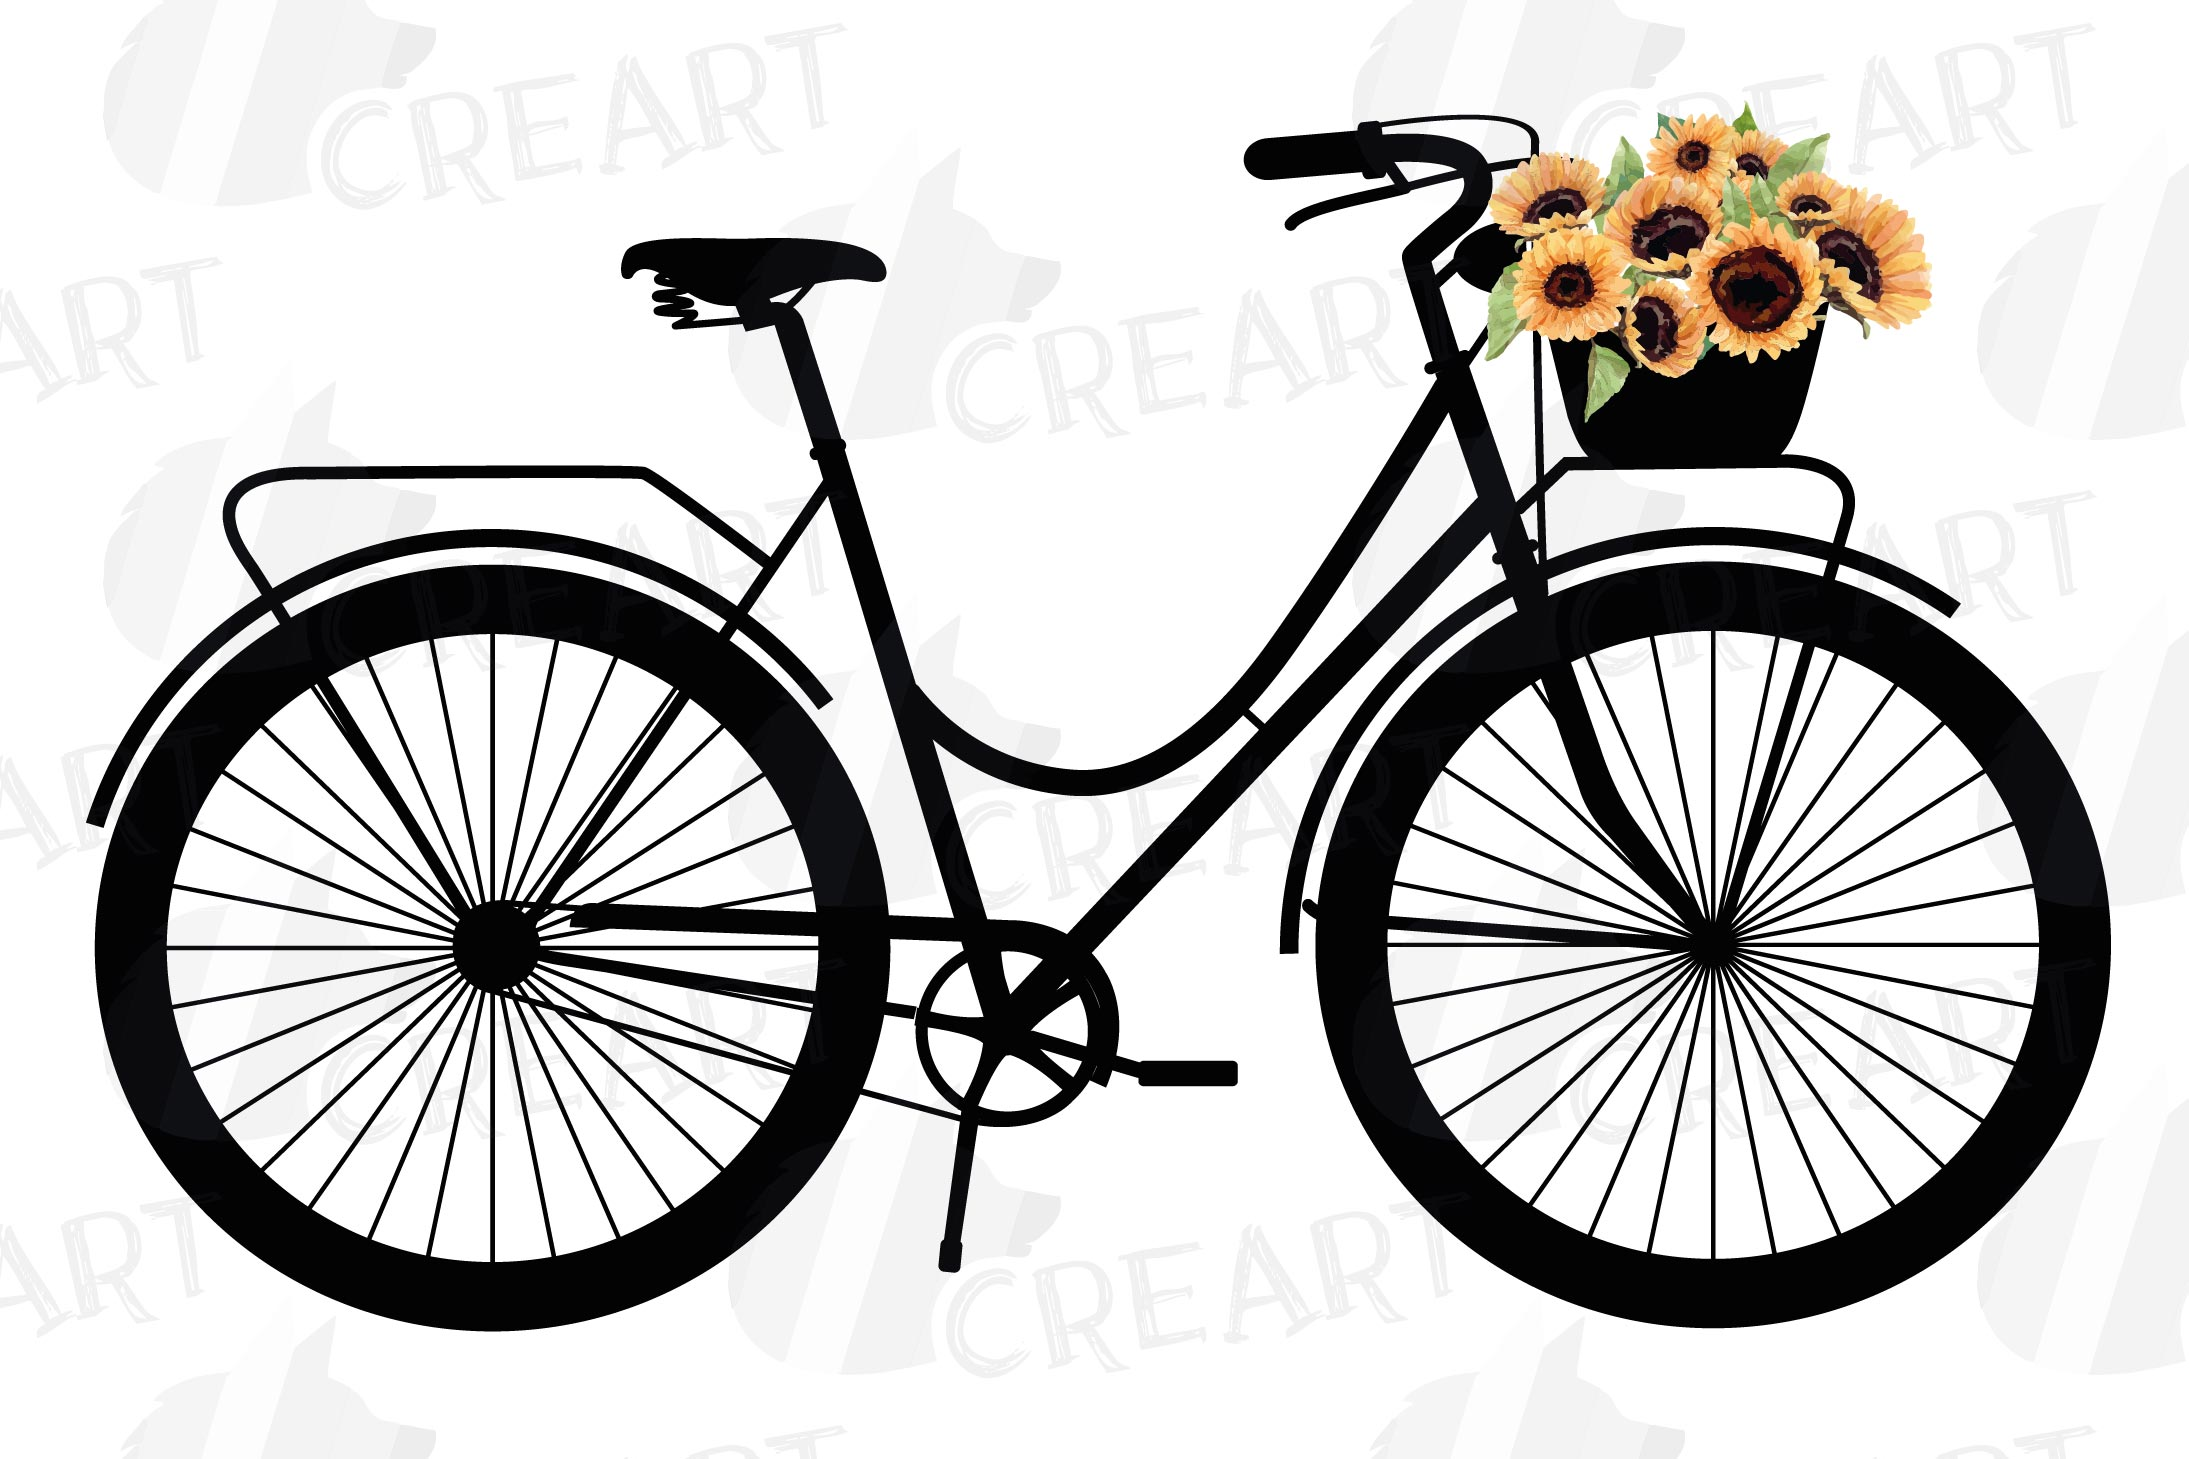 Sunflower bouquets bicycles clip art. Floral bikes decor png example image 3